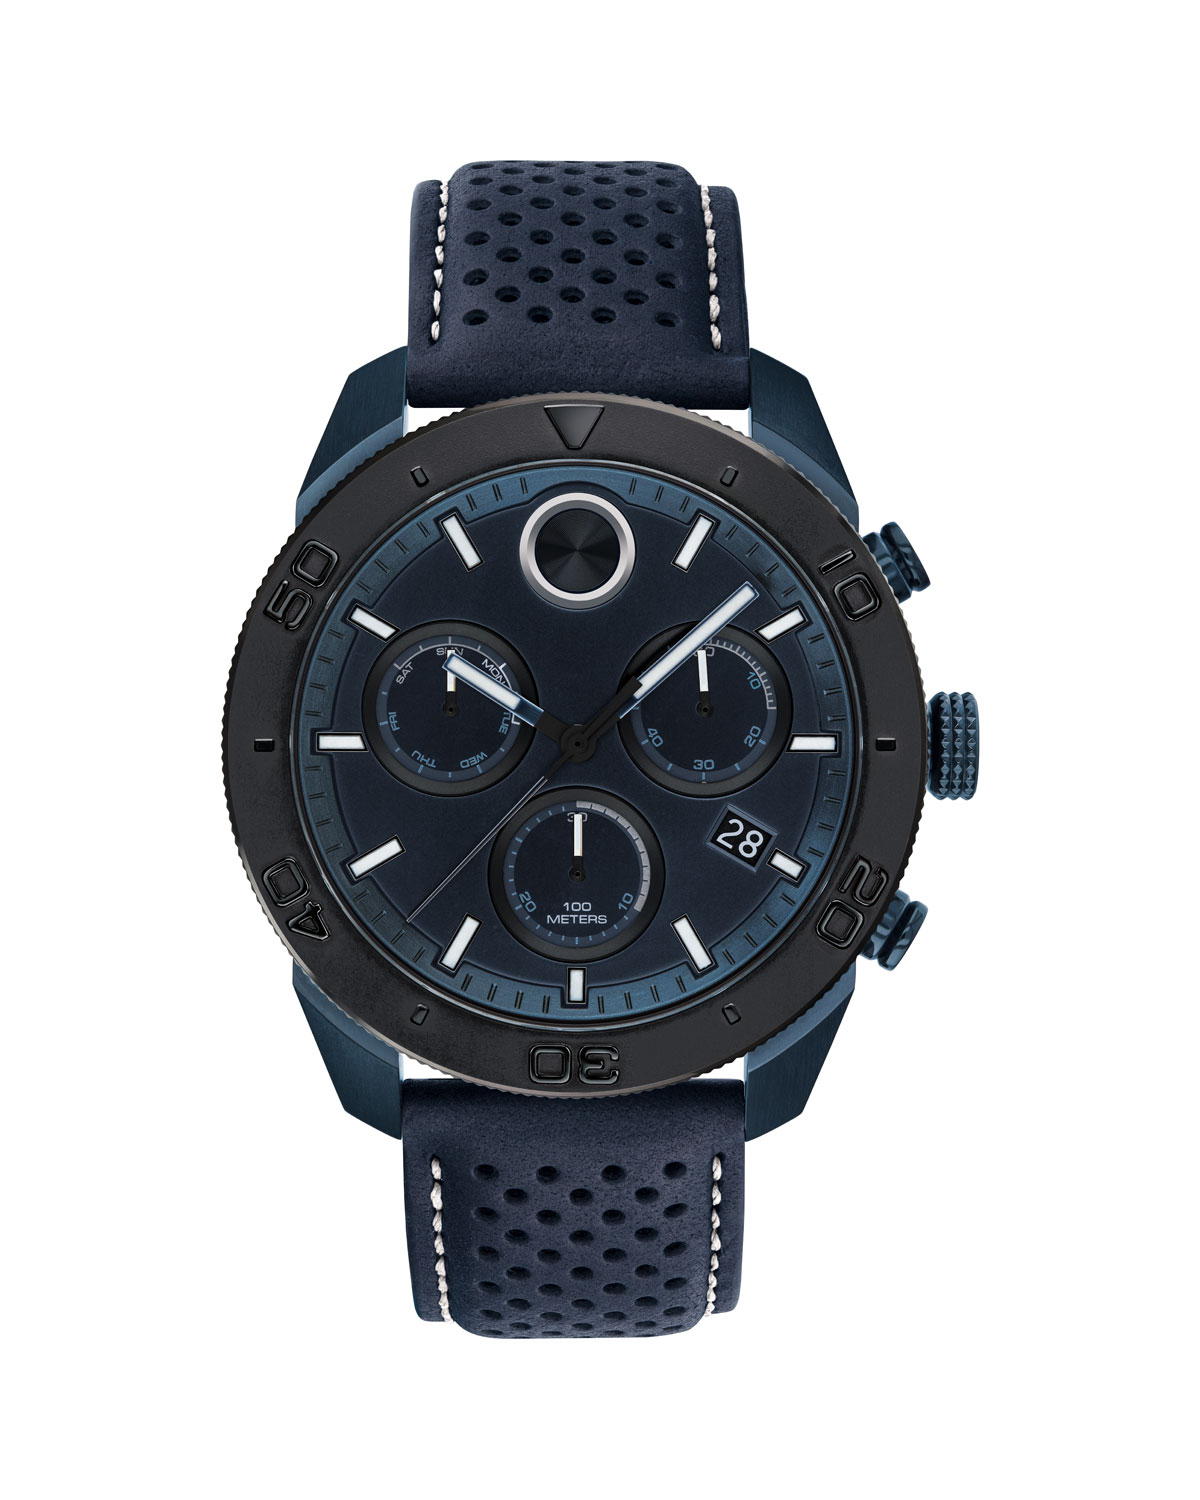 Bold Sport Chronograph Leather Strap Watch, 44Mm in Navy Blue/ Black